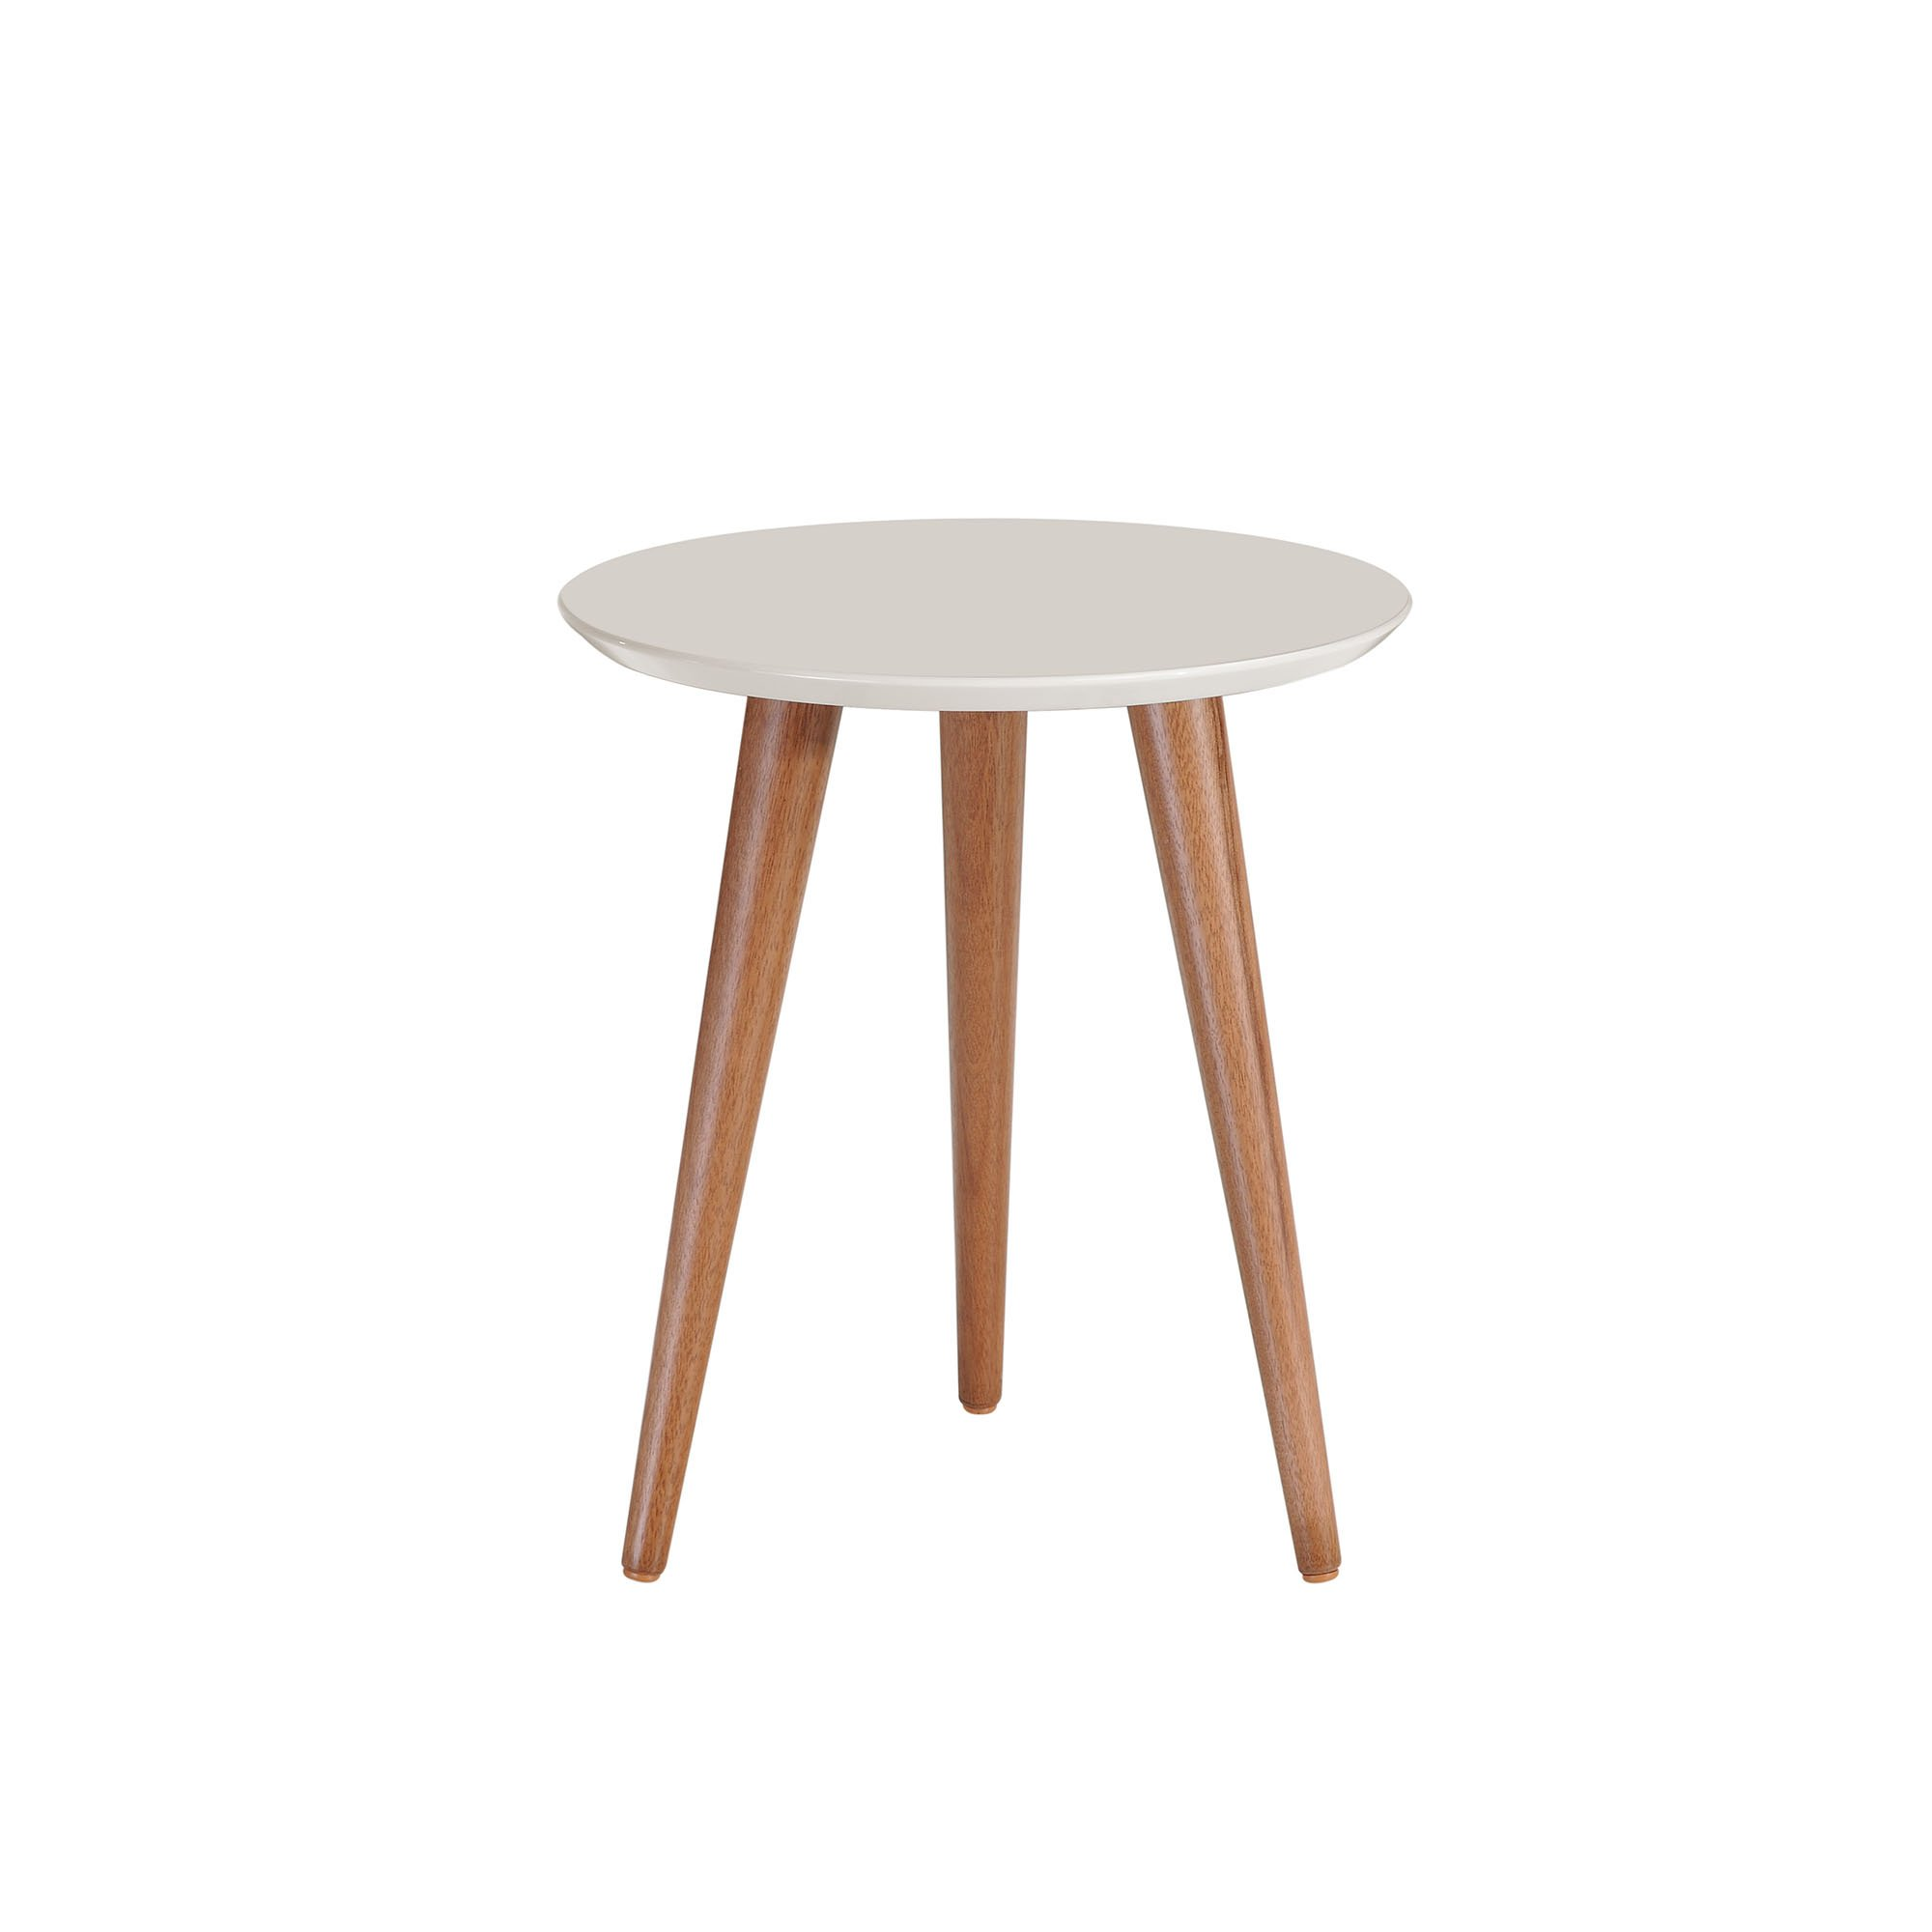 Manhattan Comfort 252152 Moore Mid-Century Modern Round End Table with Splayed Legs, Off-White